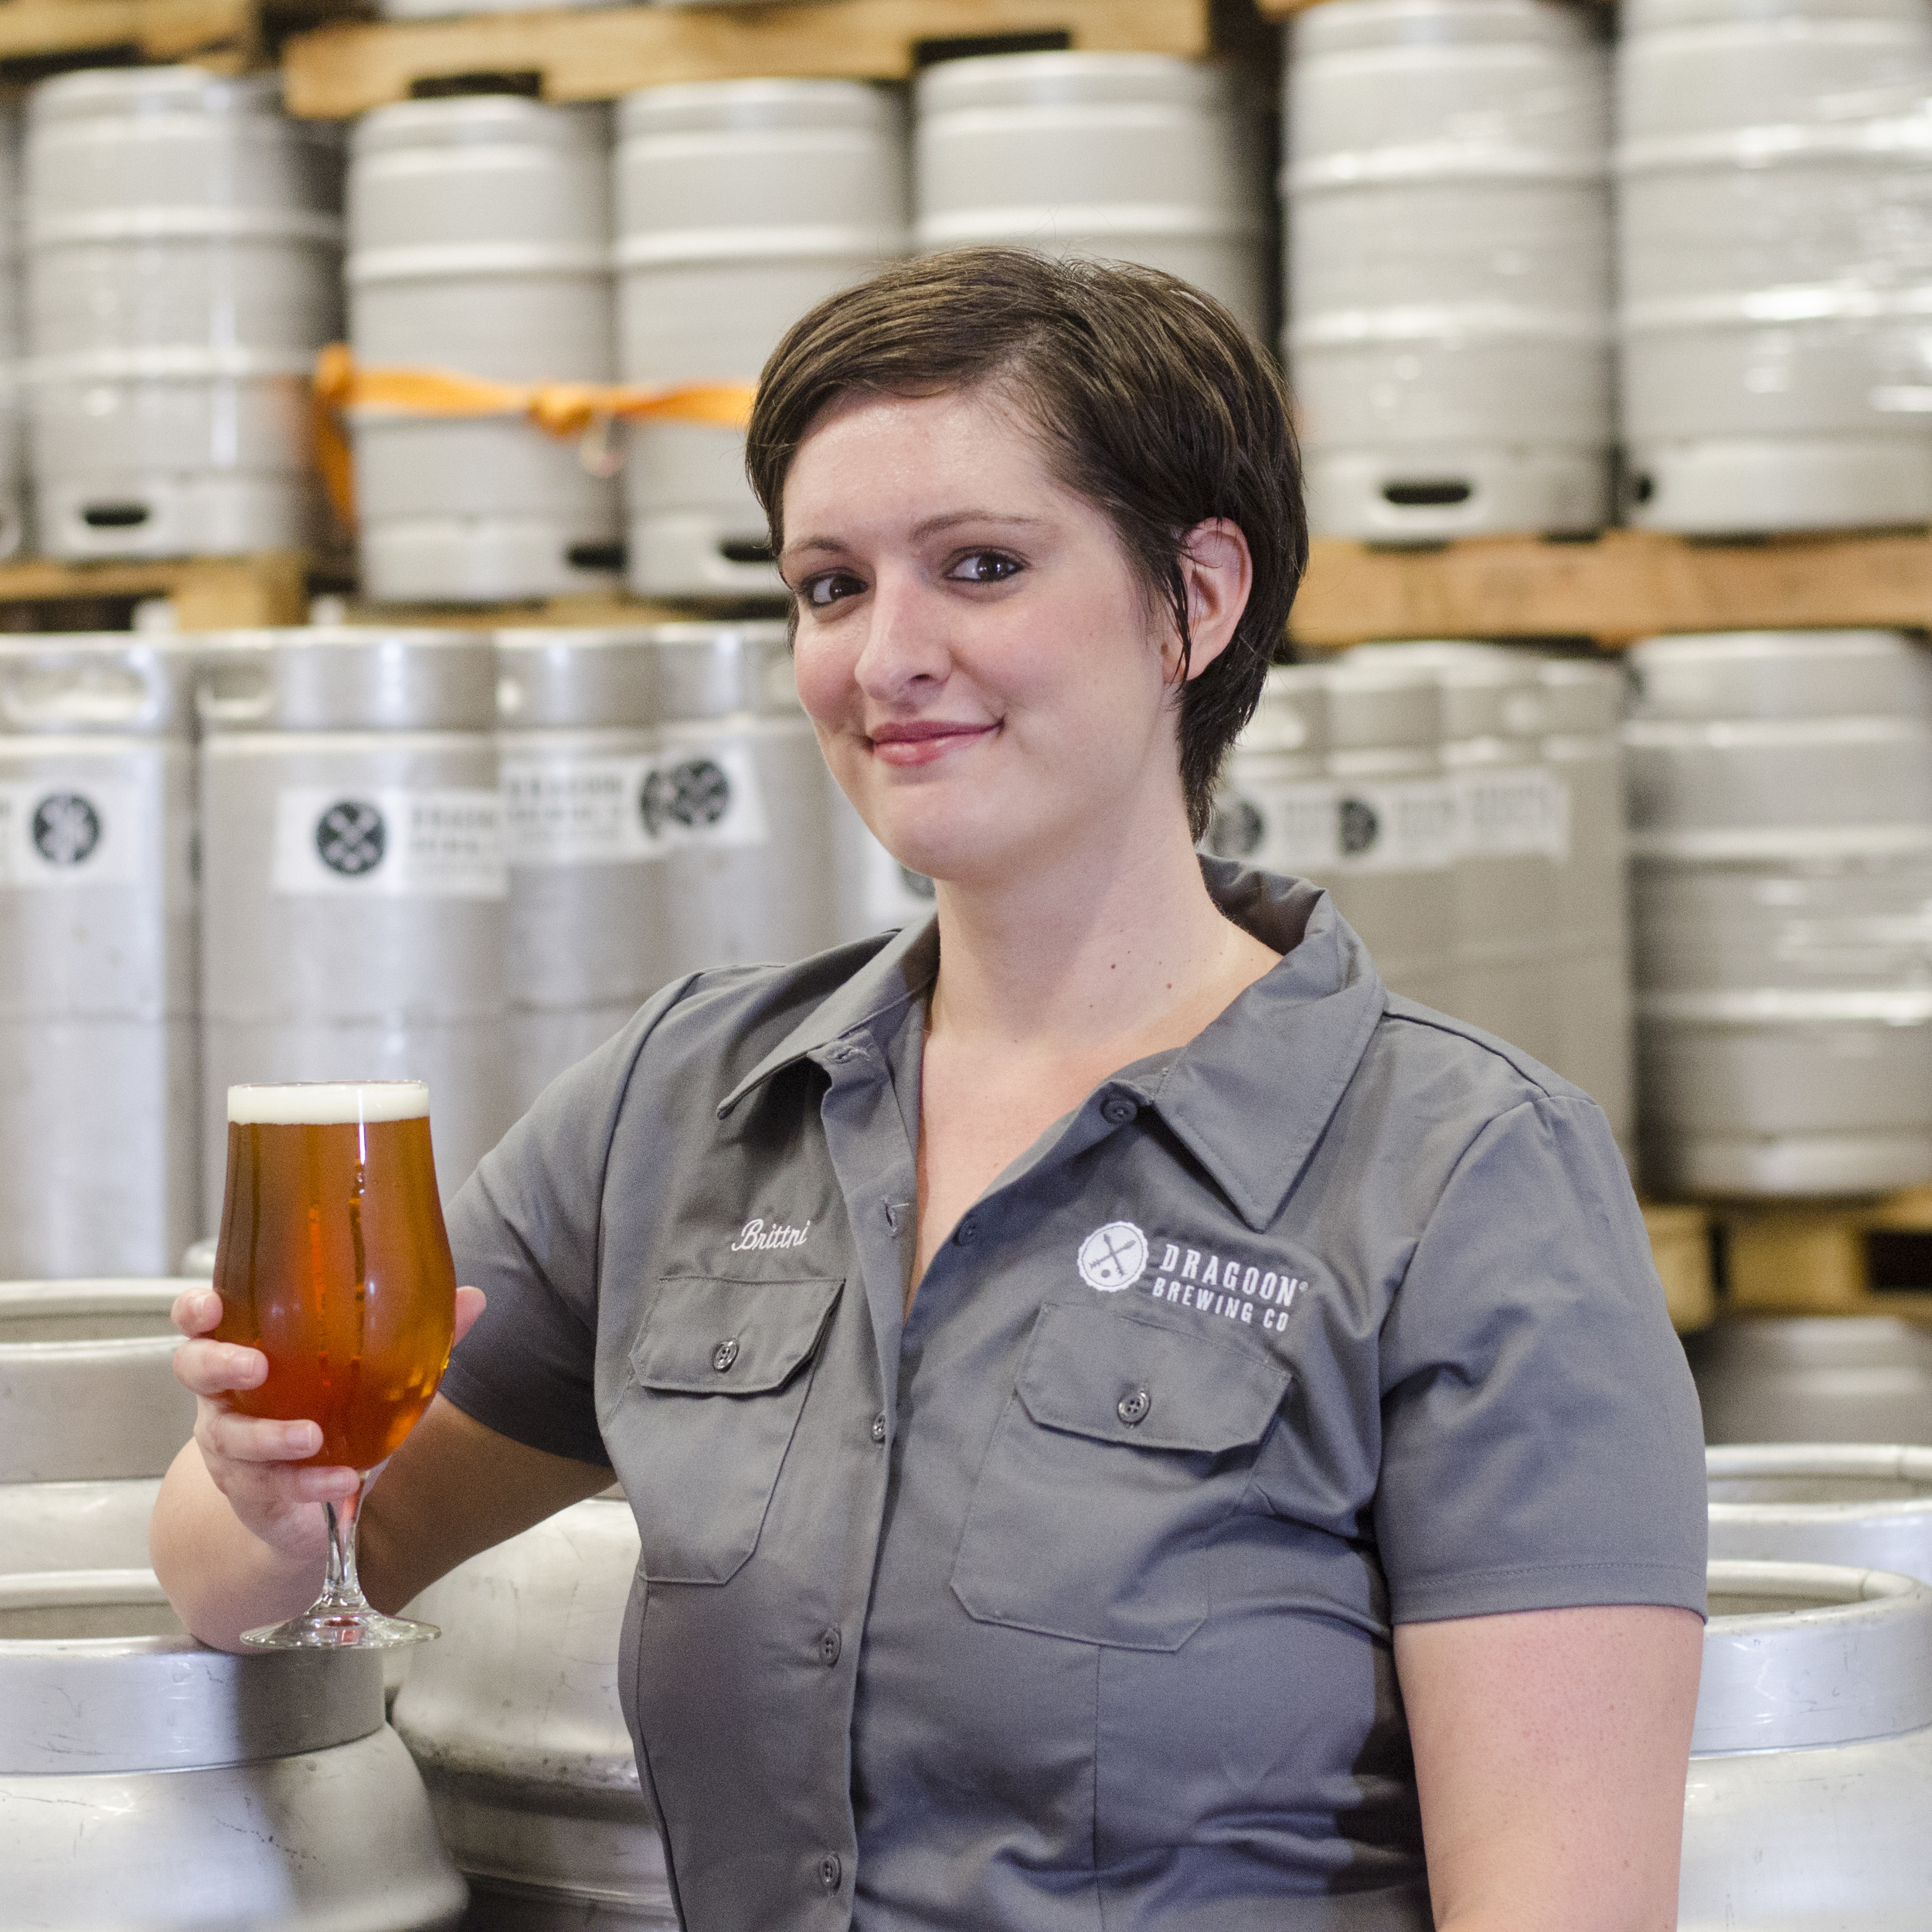 BRITTNI RAWLINS  TUCSON SALES REP  Brittni is most enthusiastic whether it's homebrewing, kickball, trivia, or selling Dragoon IPA. She's also working on her badass beer bucket list.